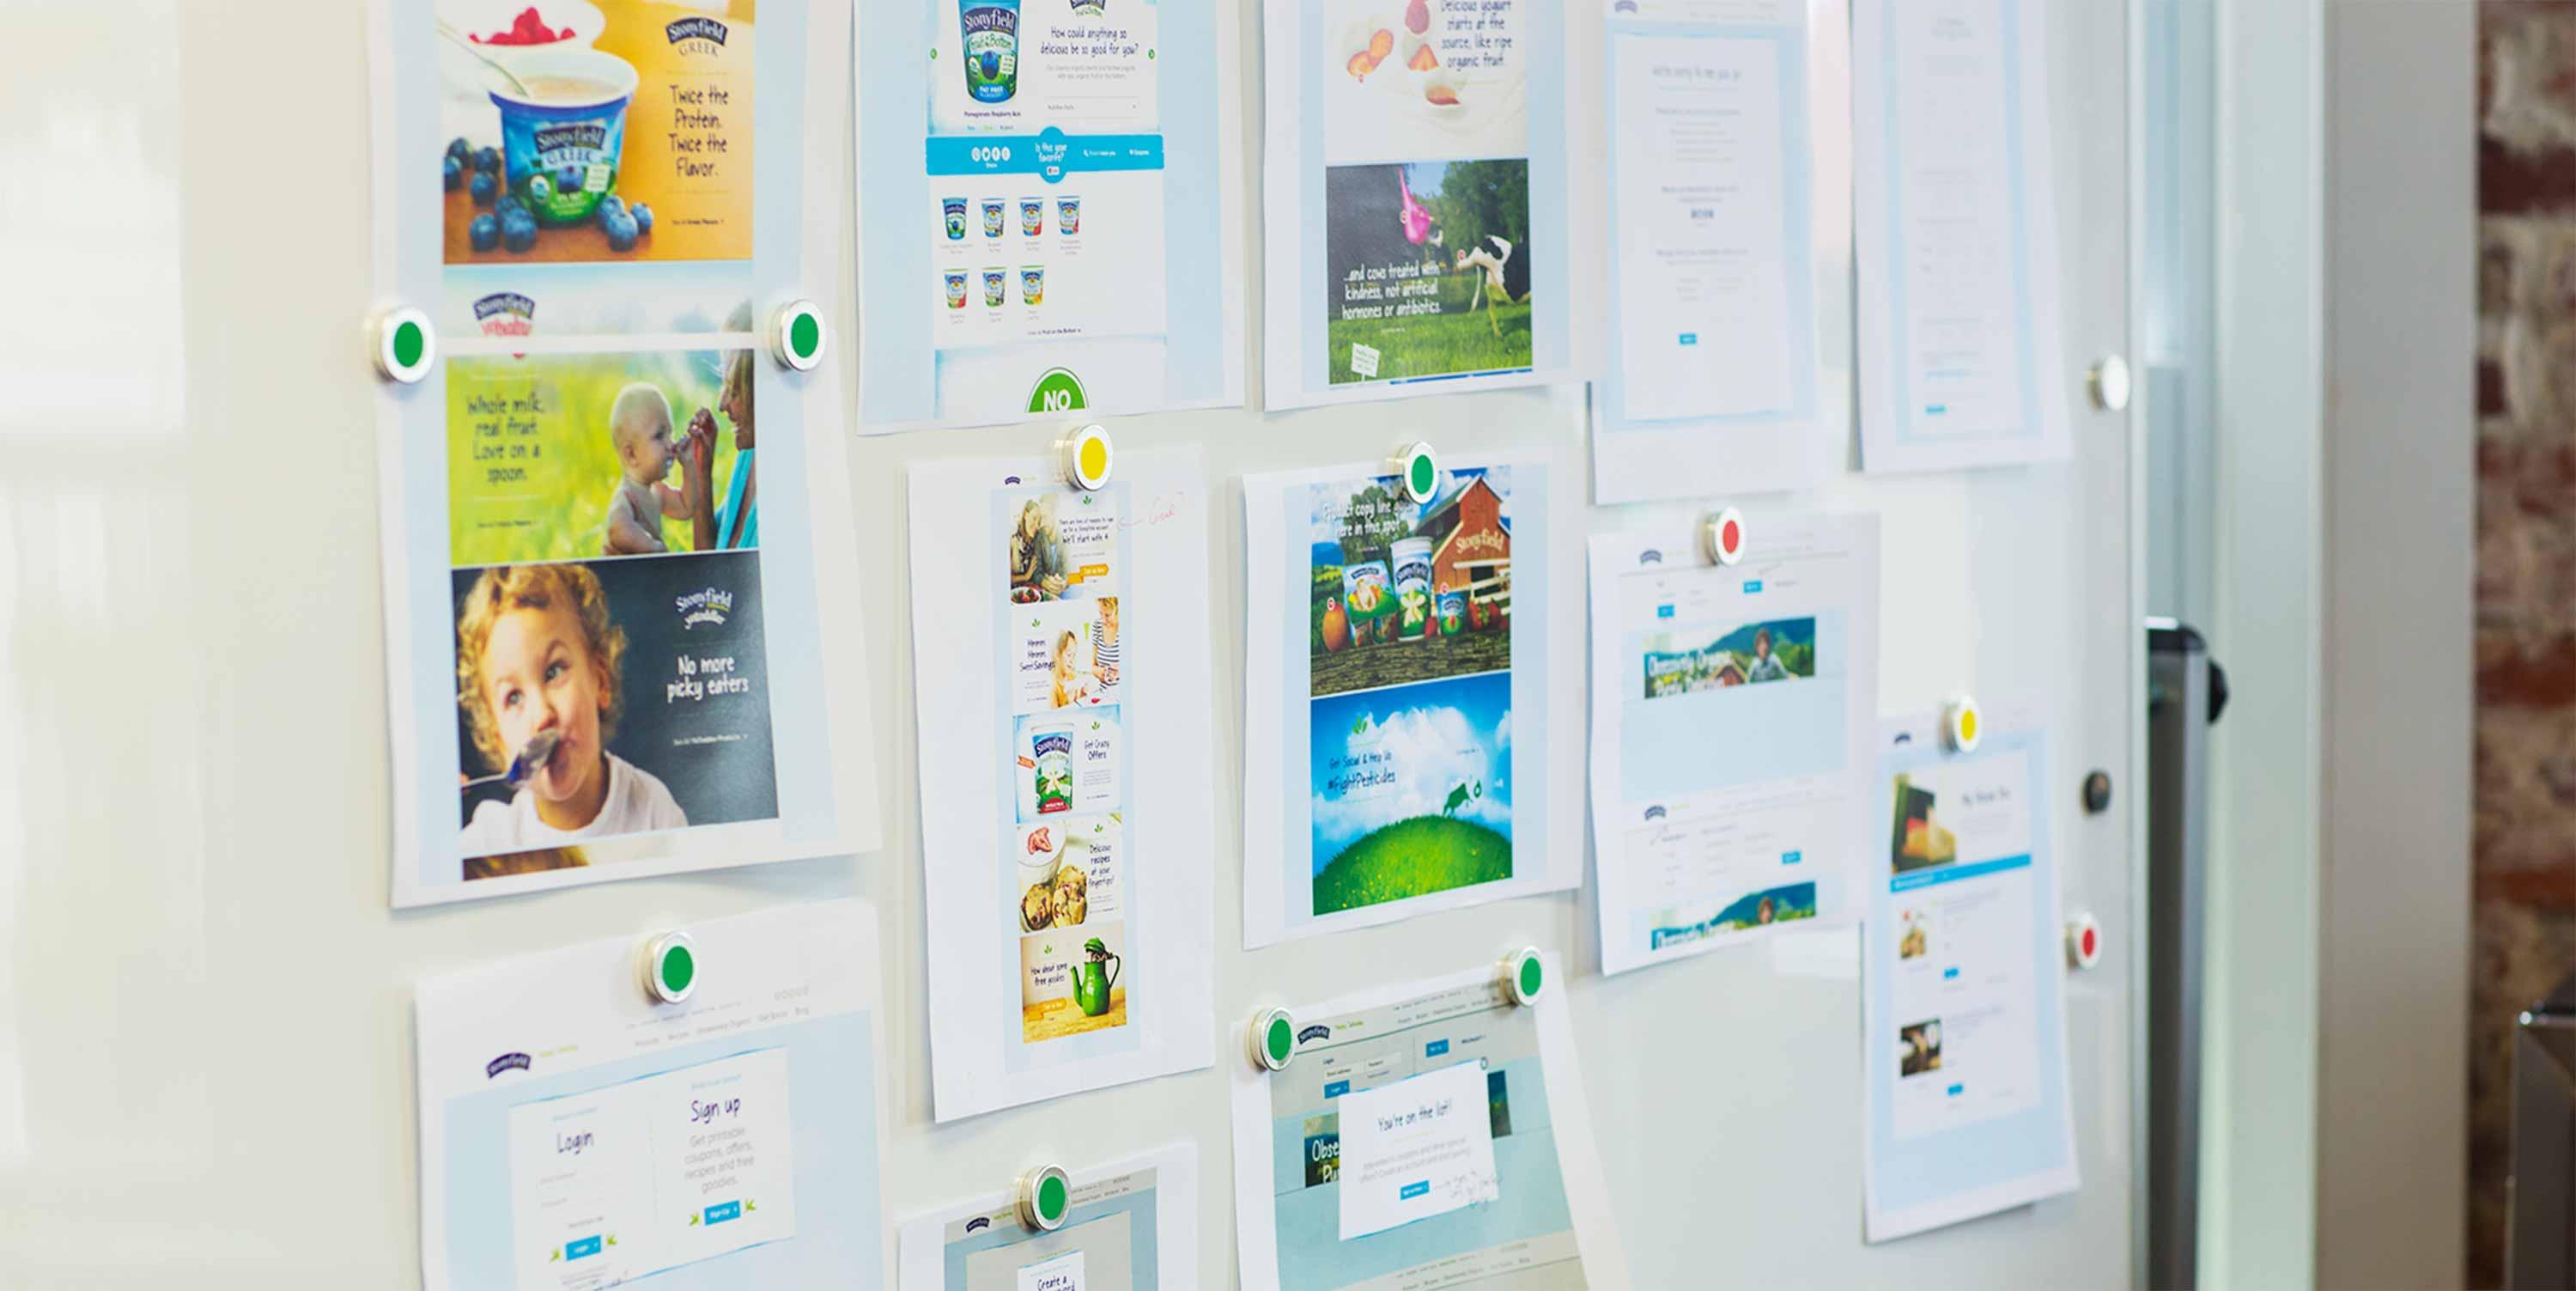 Storyboards hung on the wall showing the Stonyfield website.